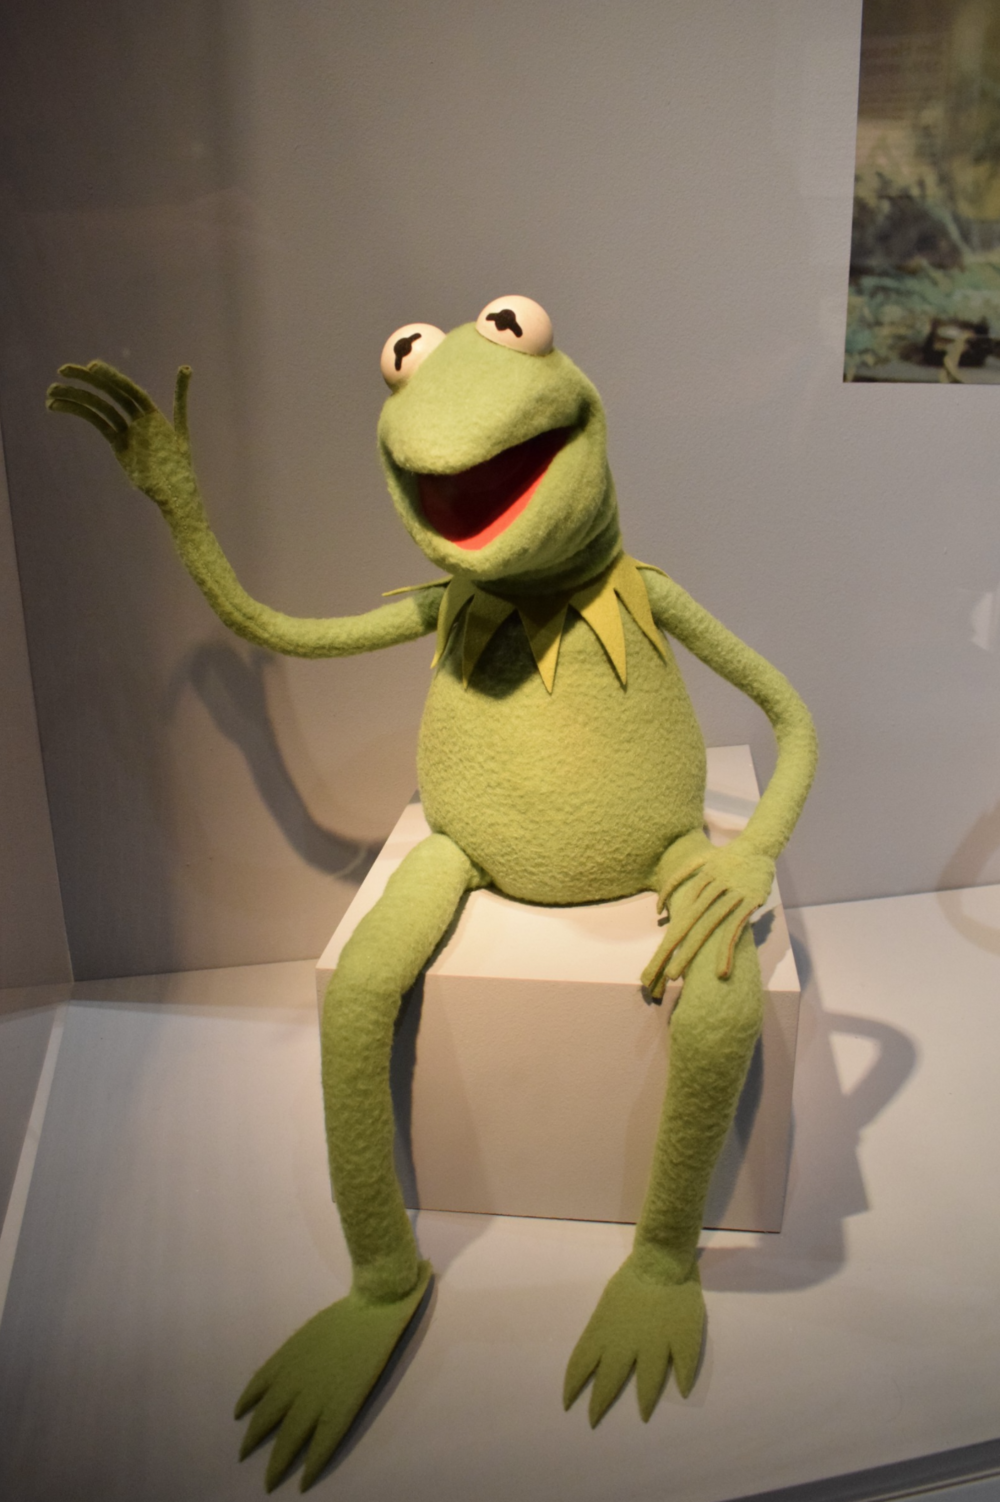 Kermit the Frog greets visitors to the Jim Henson Exhibition.